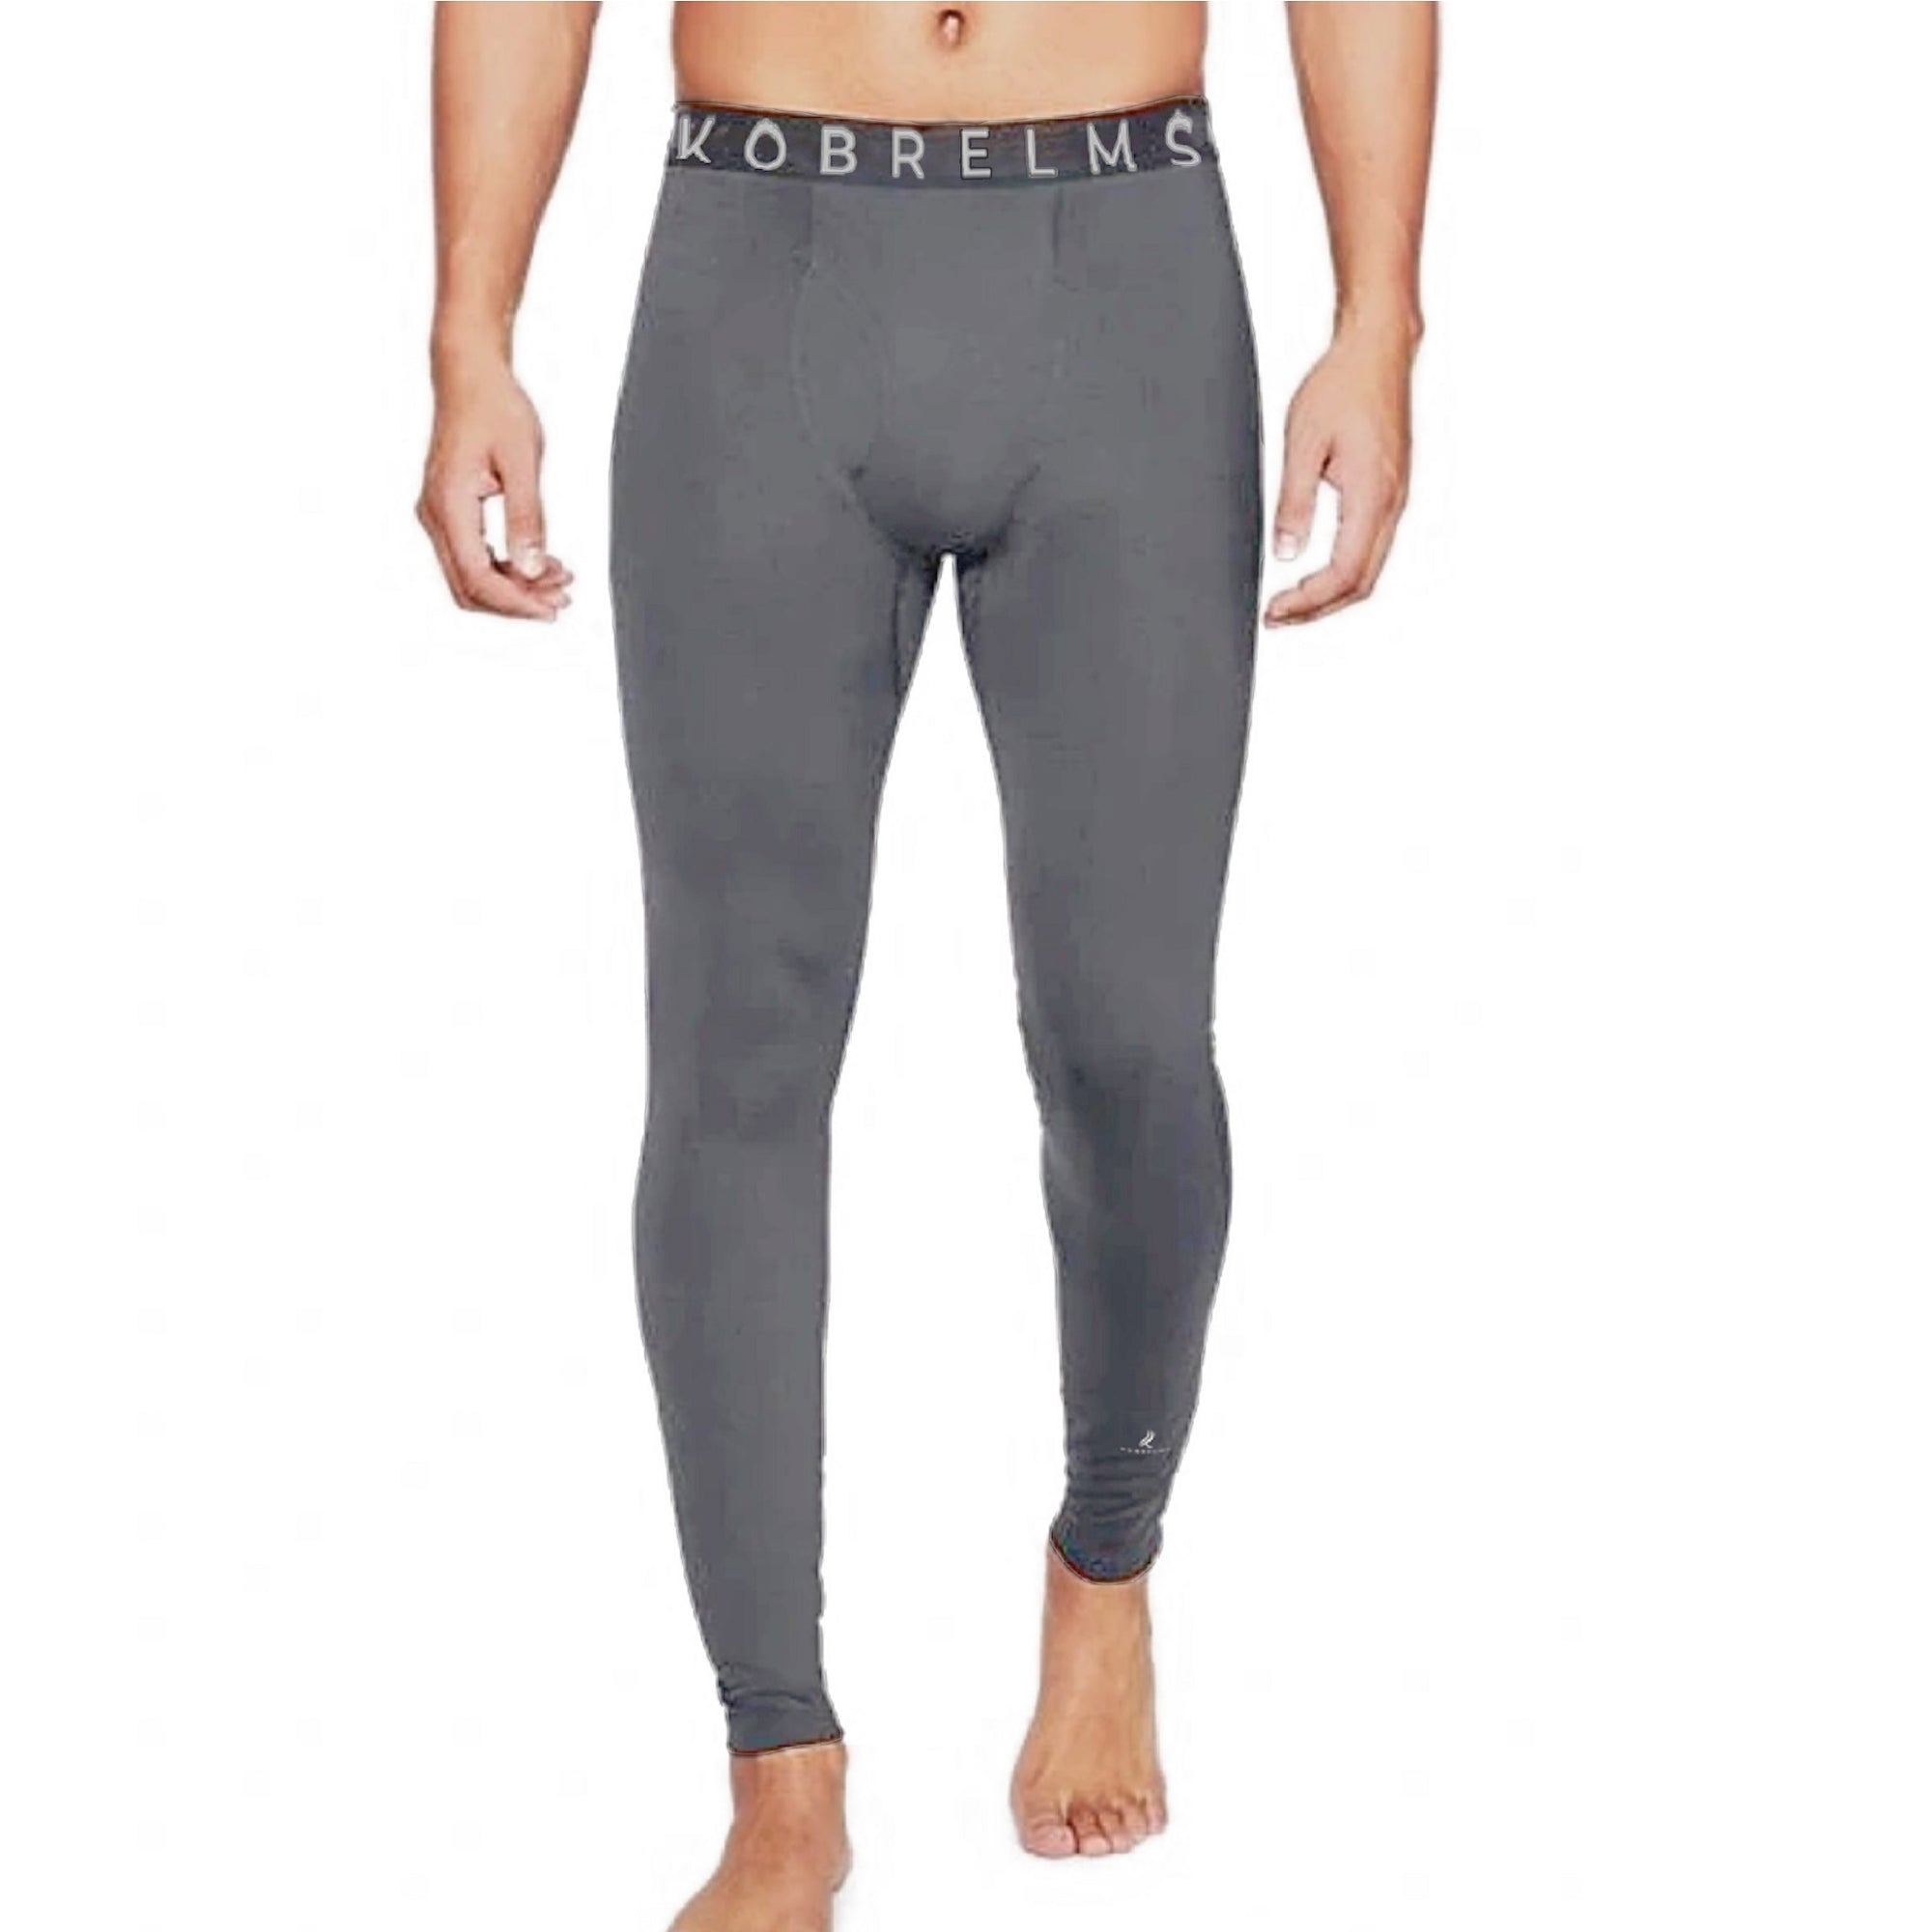 Kobrelms-Bottoms-Men's Thermal Compression Pants (Available FEBURARY 2021)-Grey / S